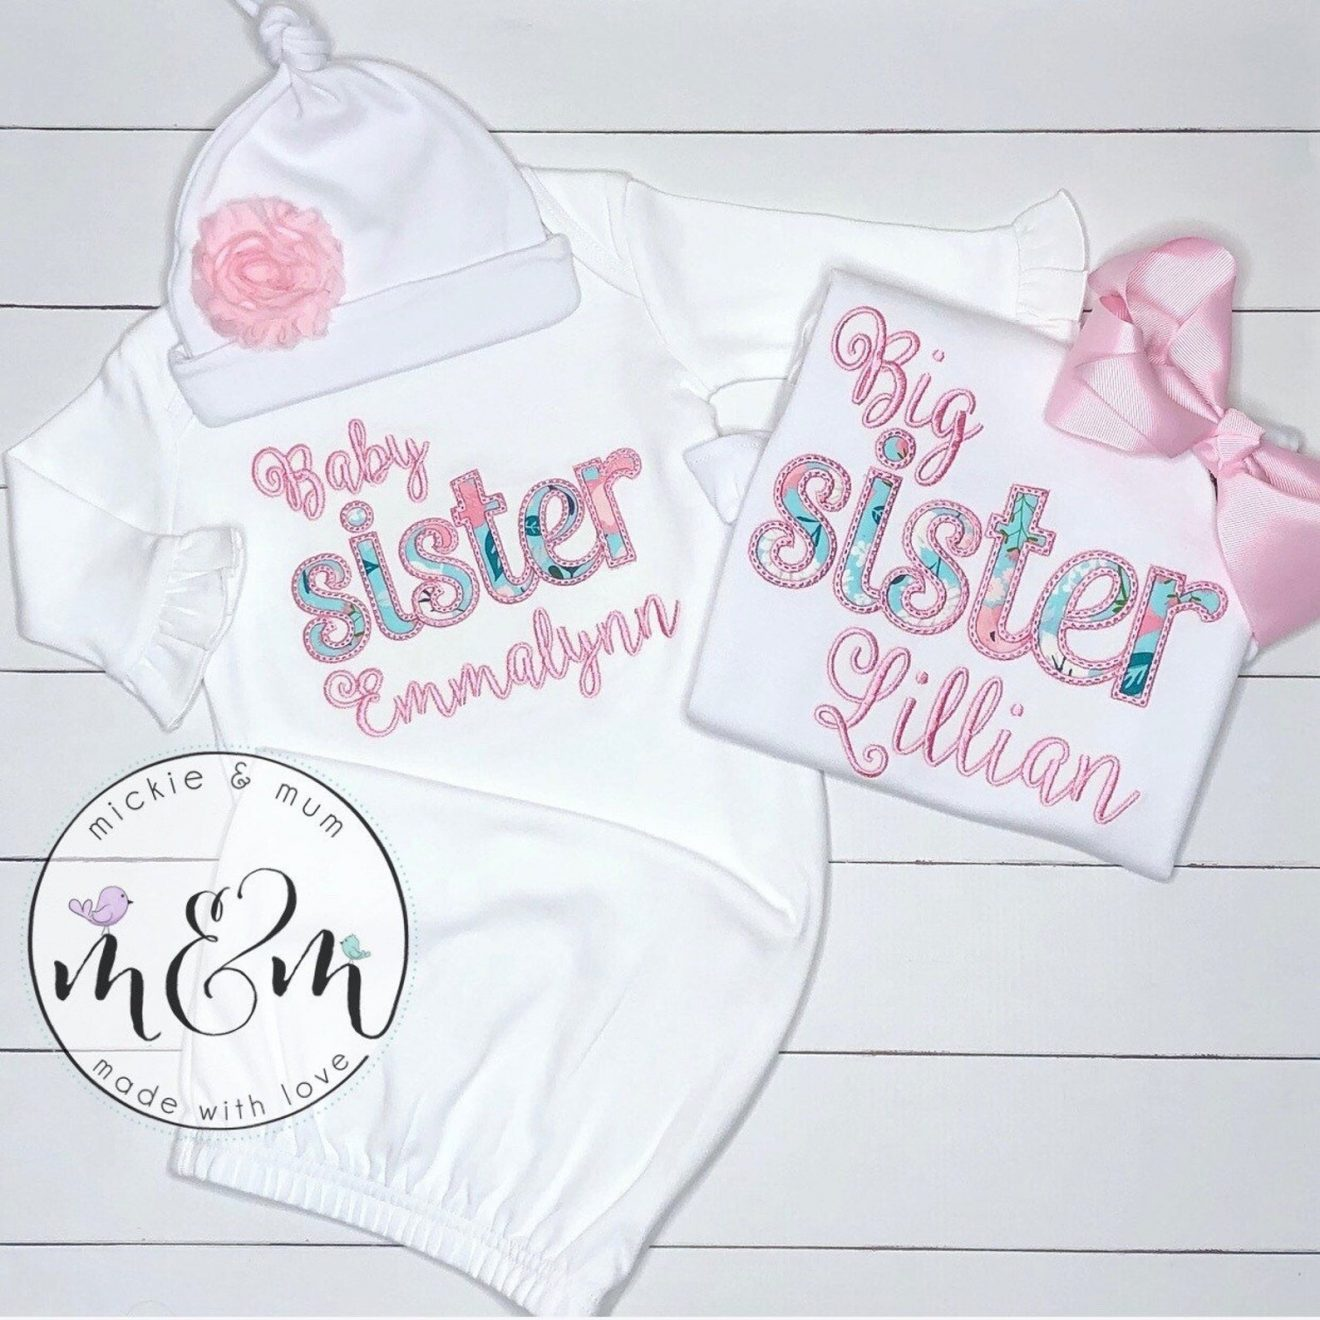 Baby Name Shirt Newborn Shirt Just Arrived Coming Home Outfit Baby Shirt Personalized Shirt Birth Announcement Bodysuit Baby Girl Shirt 129